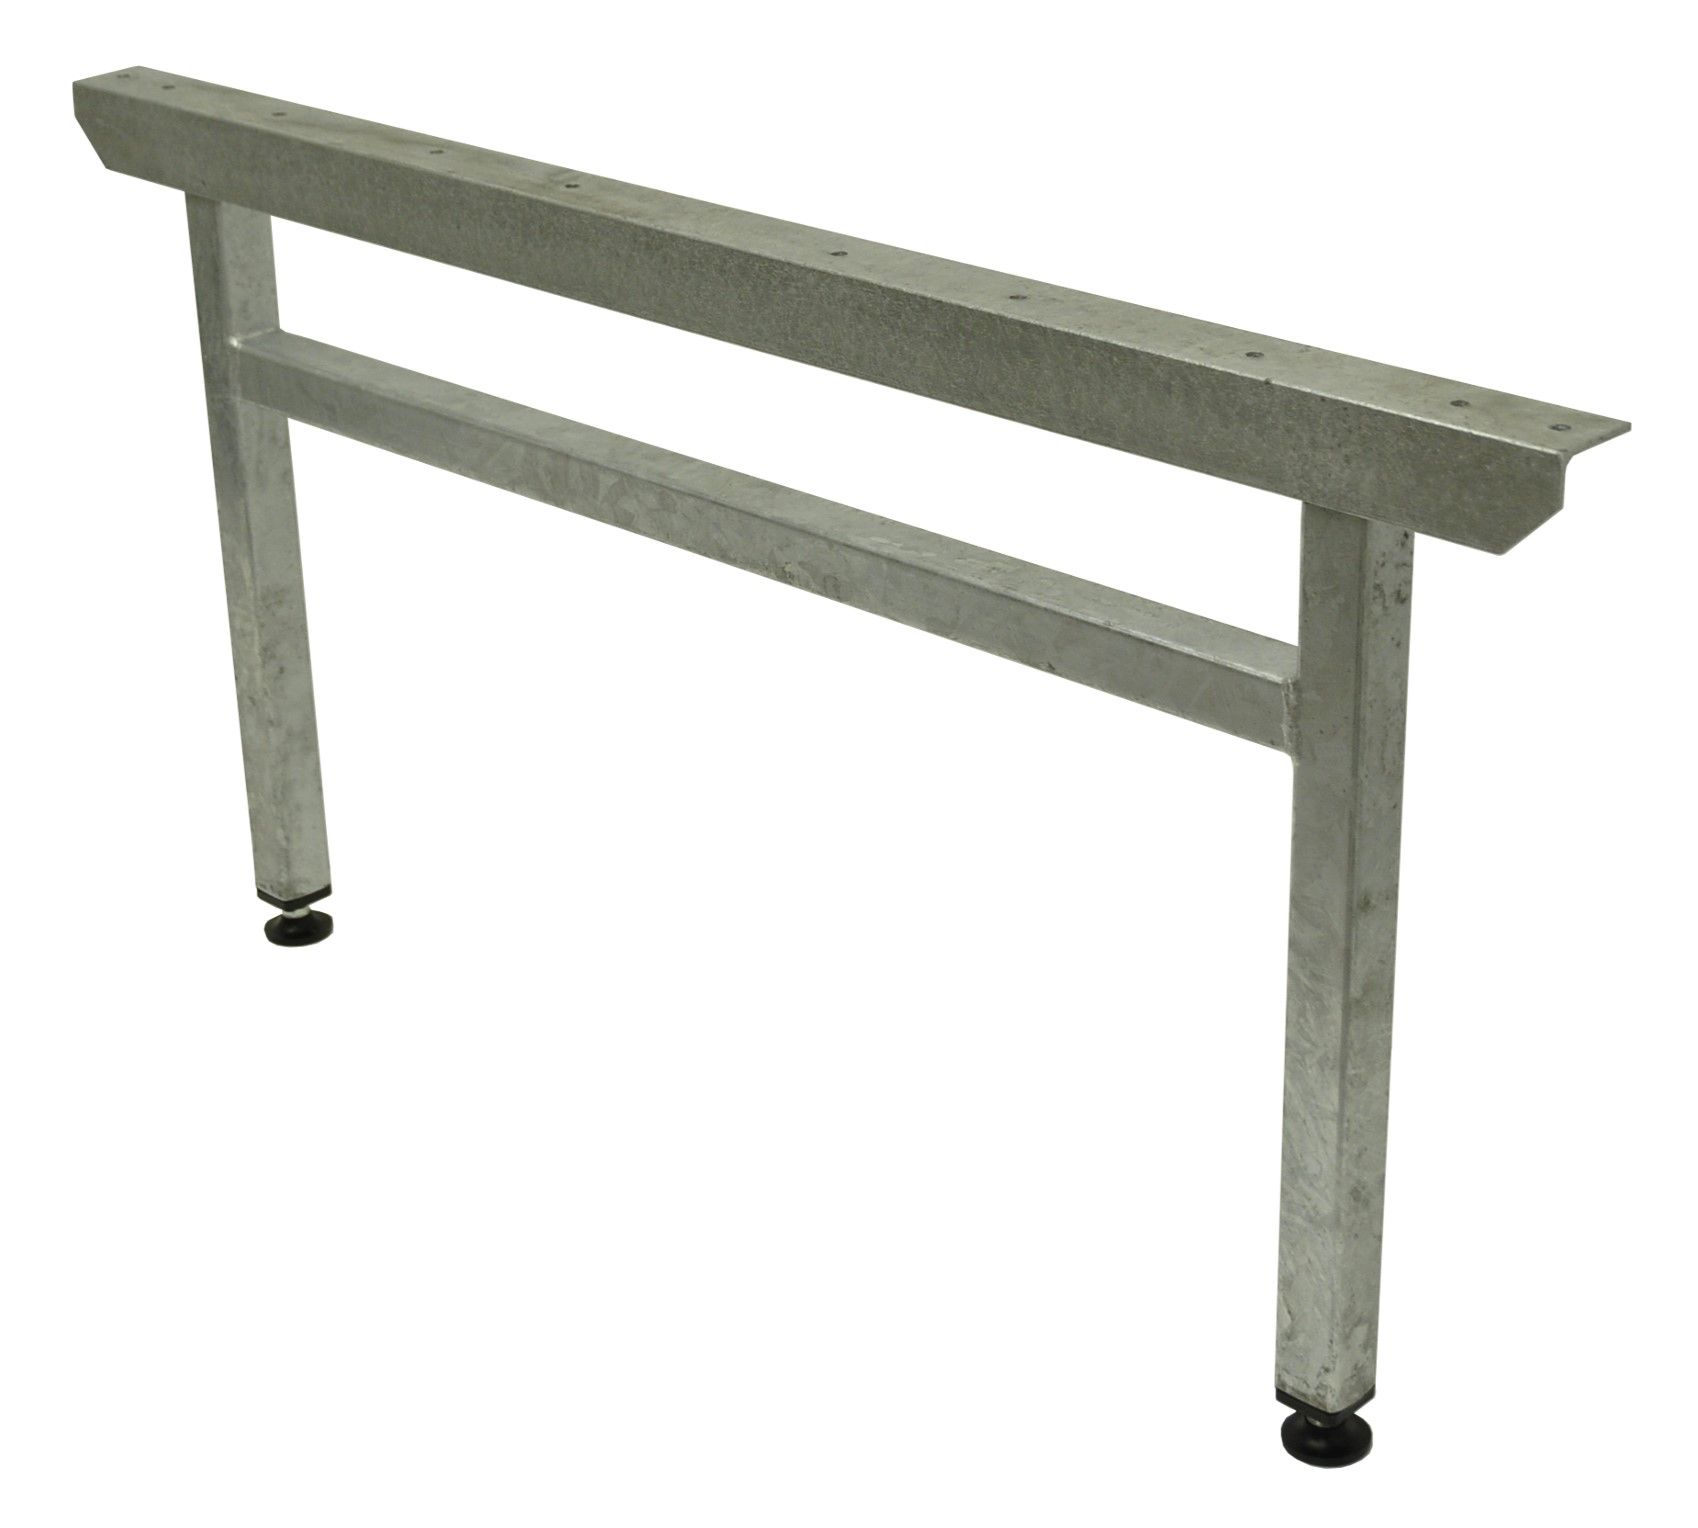 Yarra Island 500mm wide Bench Seat Brackets